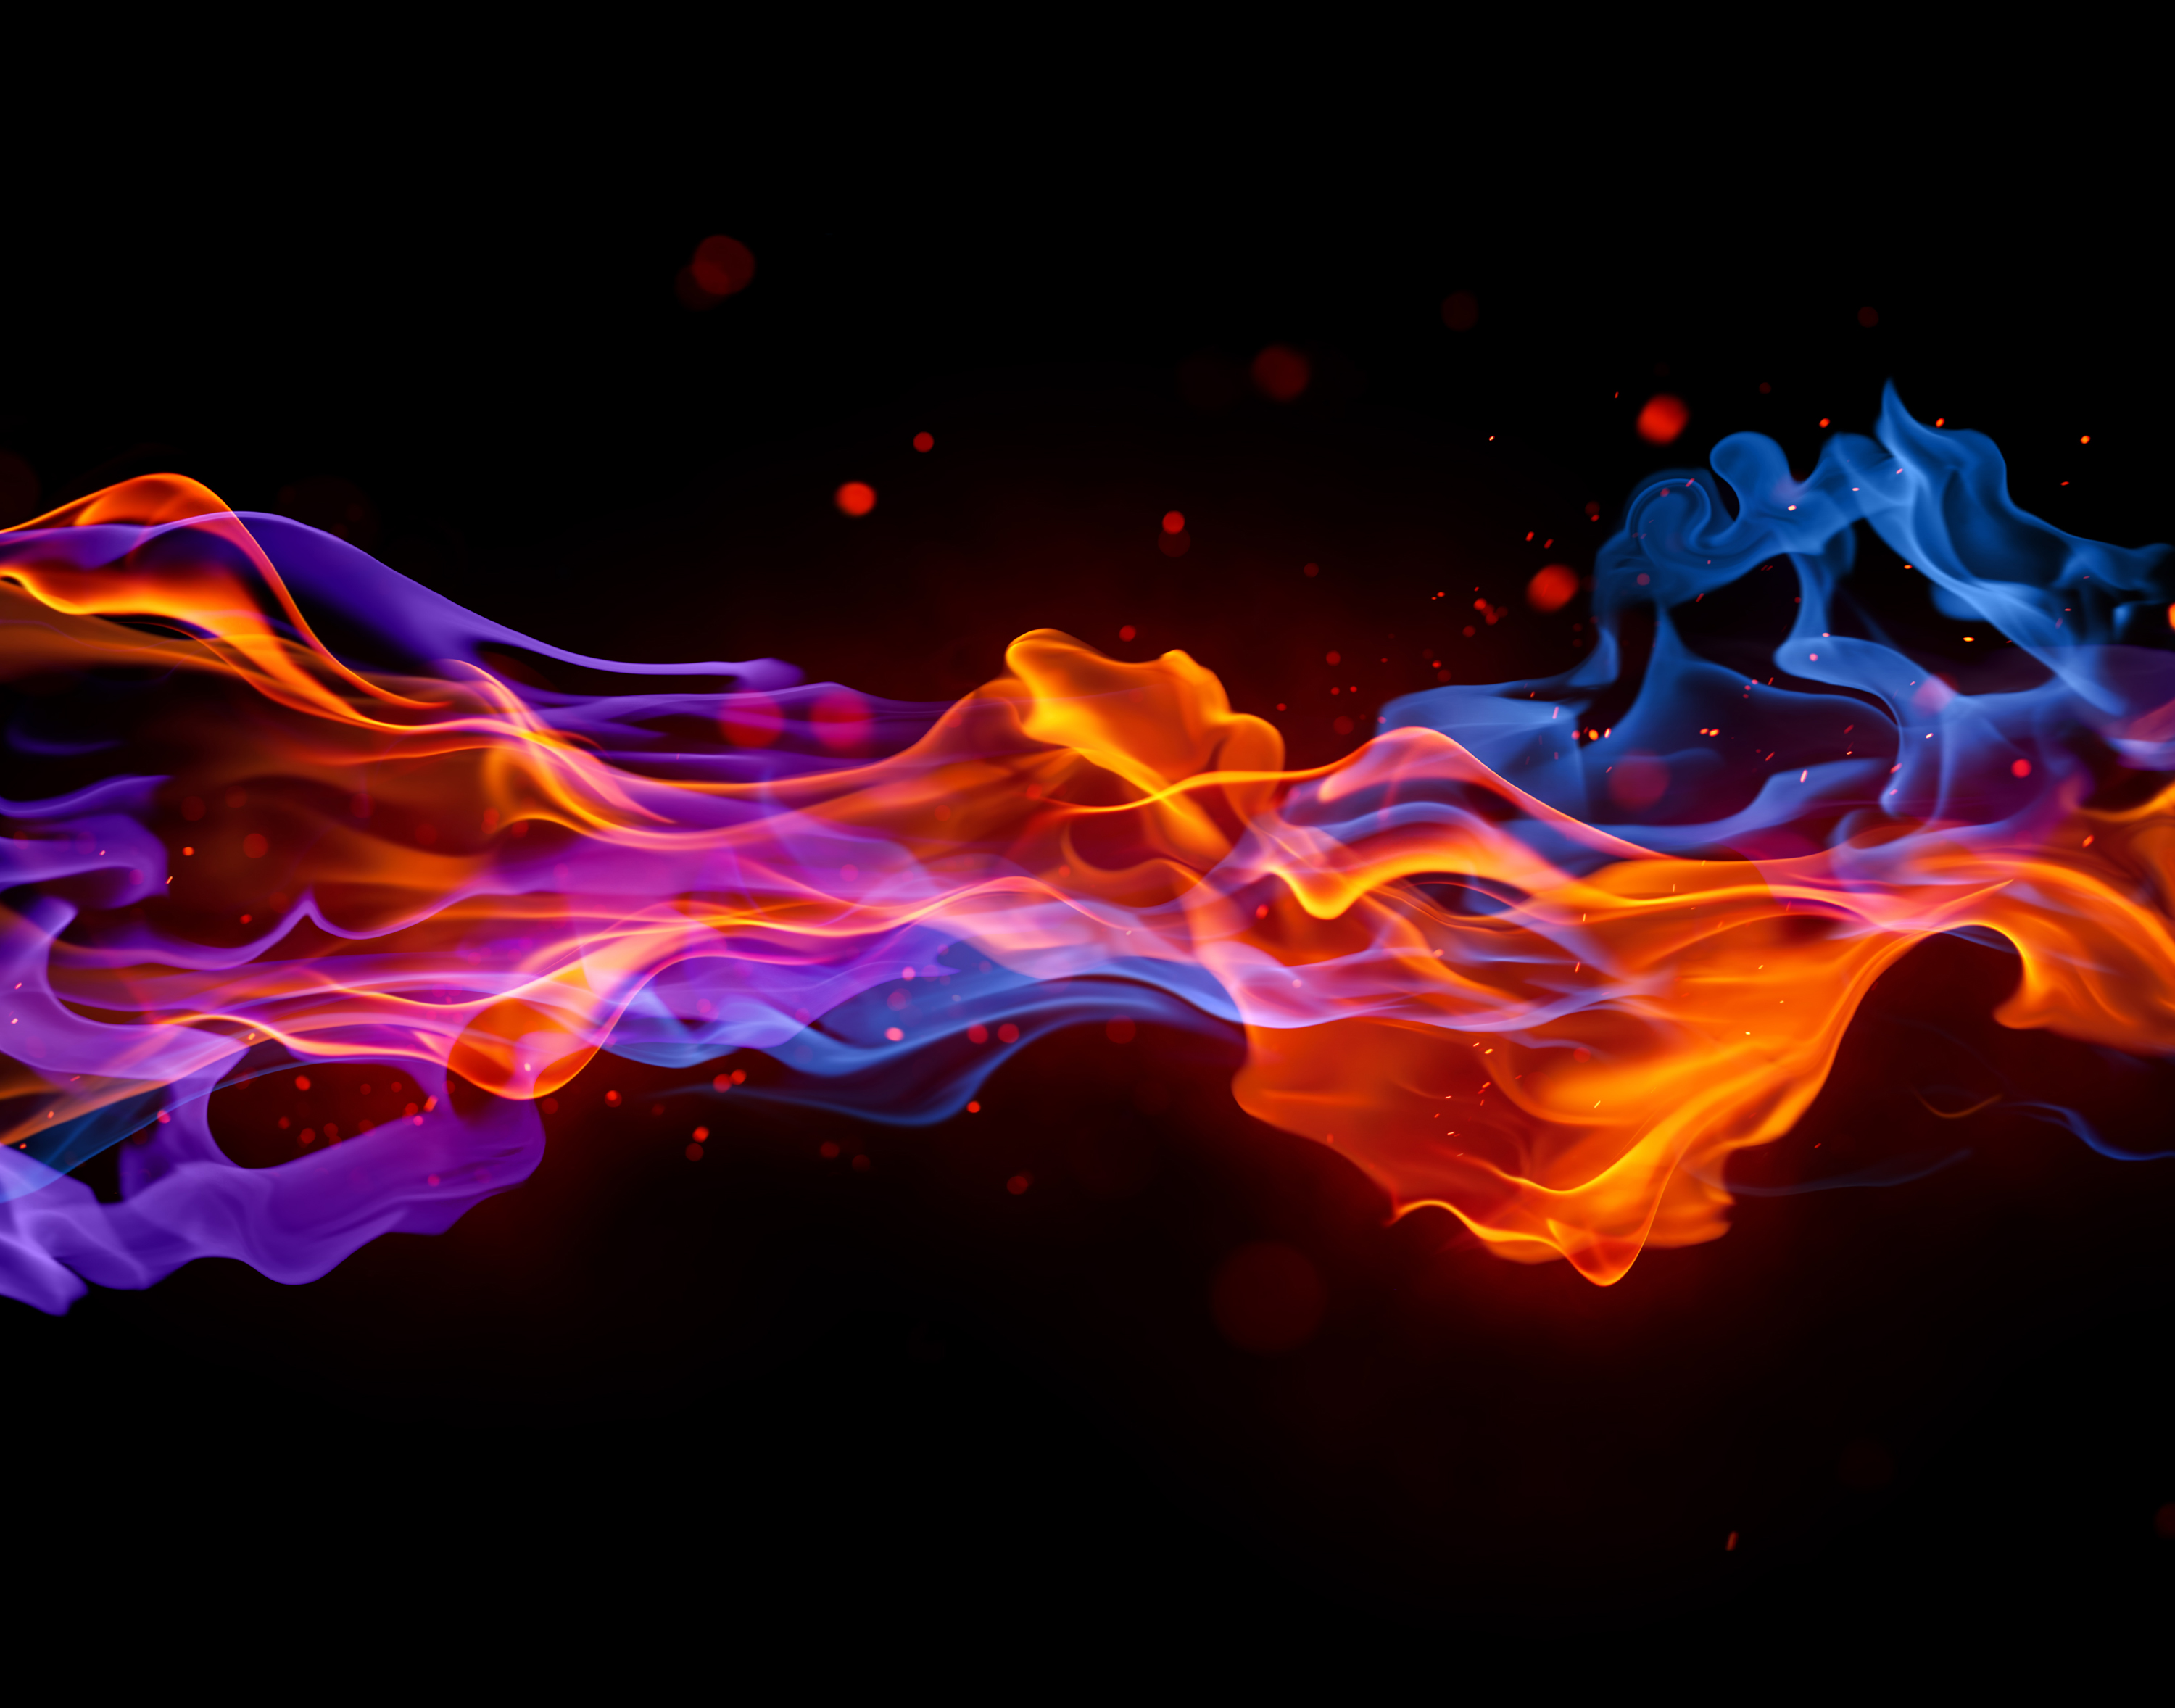 3000x2356 - Red and Blue Fire 41